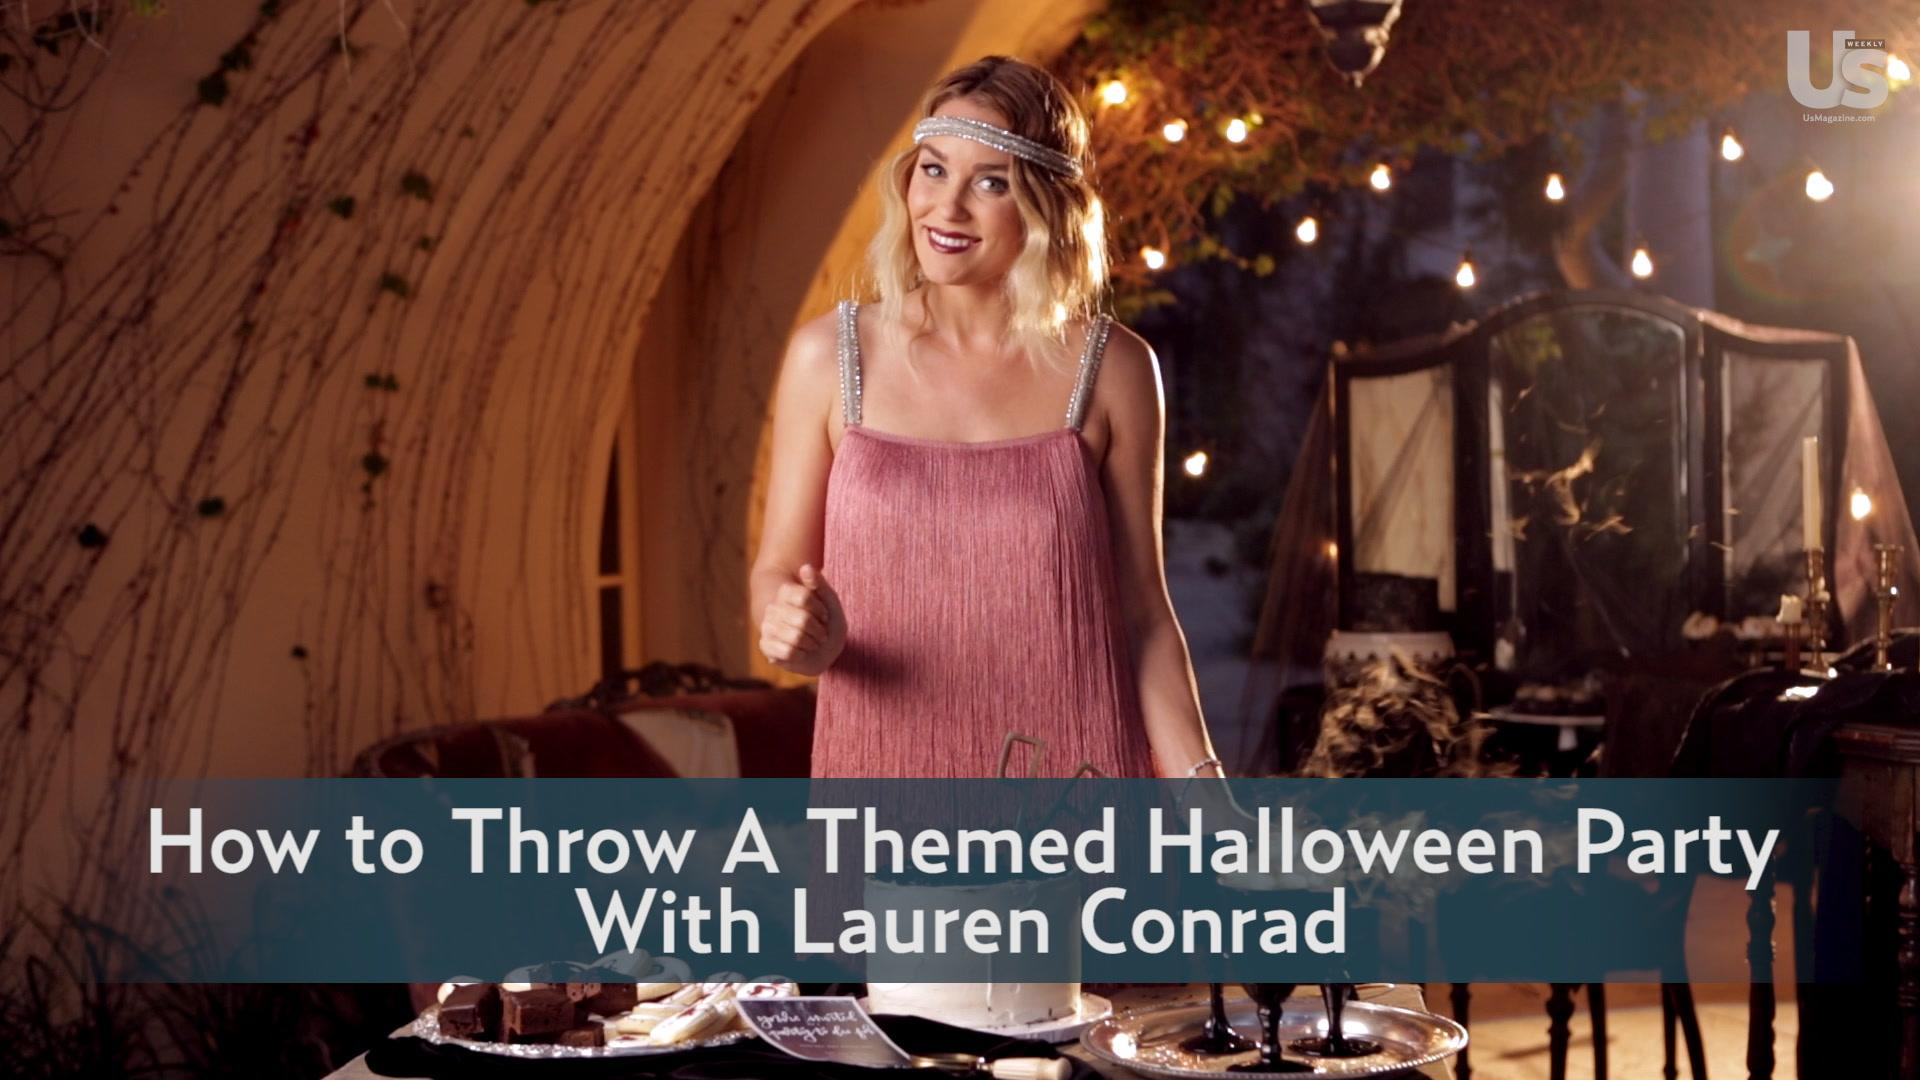 How to Throw a Themed Halloween Party With Lauren Conrad